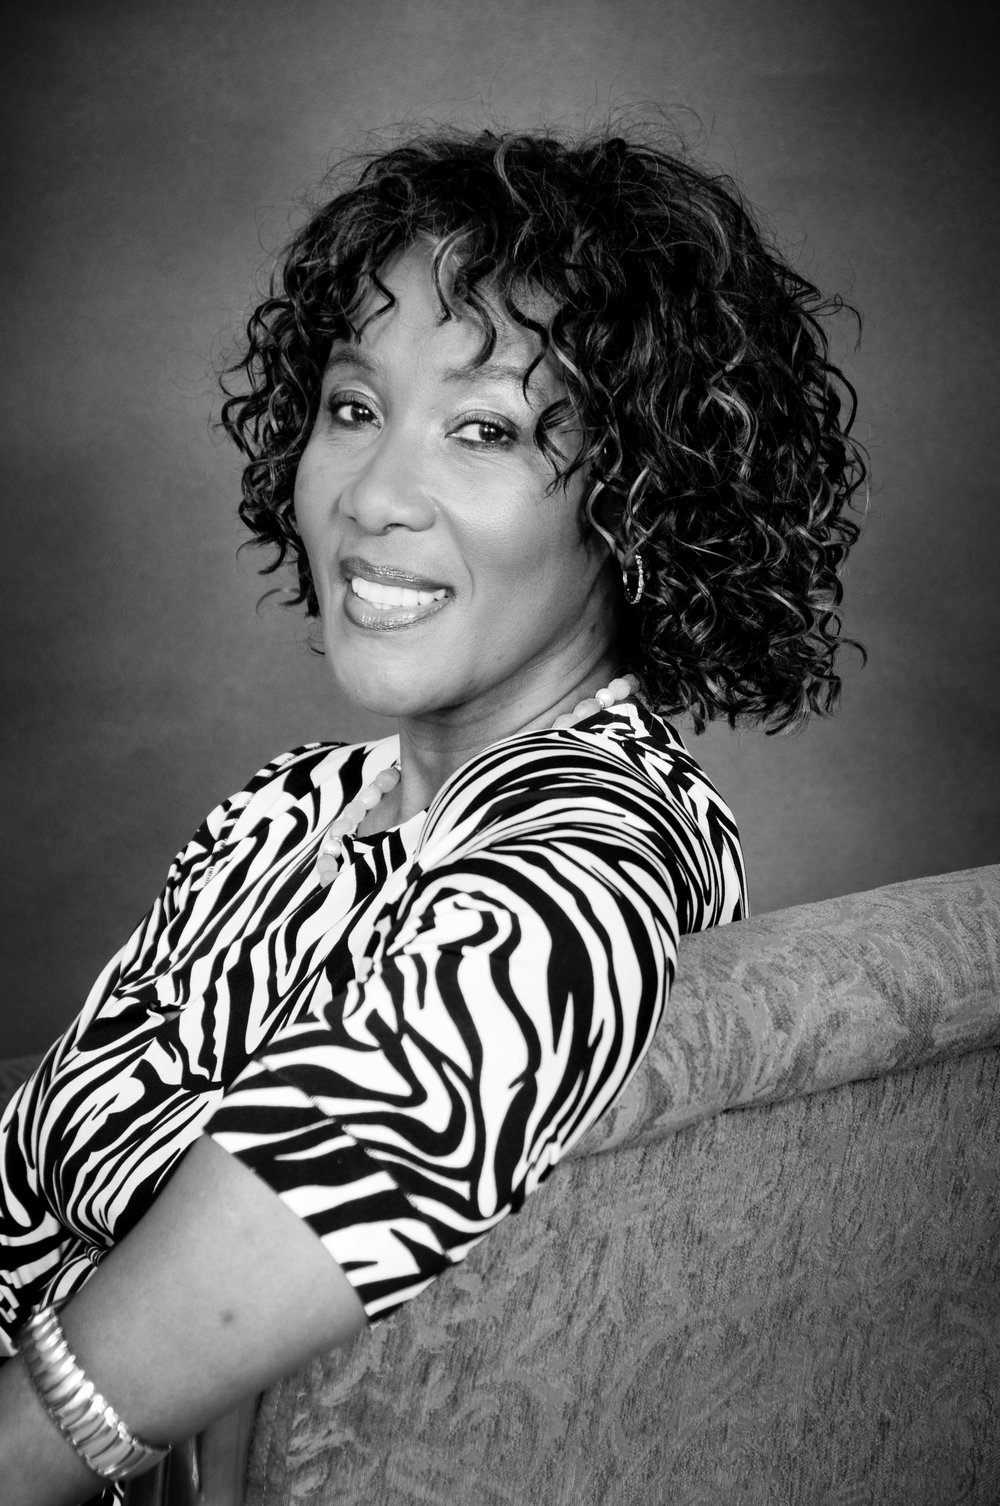 Dr Makaziwe Mandela    Dr Makaziwe Mandela holds a BA Social Work from the University of Fort Hare, and an Honours in Sociology from the University of Natal.  In 1984, she was awarded a Fulbright Foreign Scholarship and a Fulbright Distinguished Fellowship Award, allowing her to attain a Masters in Sociology and a Doctorate in Anthropology from the University of Massachussets.  Dr Mandela has sat on the boards of Rand Water Services, Enviroserv Limited and the Nelson Mandela Foundation.  She is a consultant in training development and life skills at Self Empowerment International, and sits on the board of Nestle SA.  In addition, she is the Chairman of House of Mandela, a business that she started with her daughter in 2010.